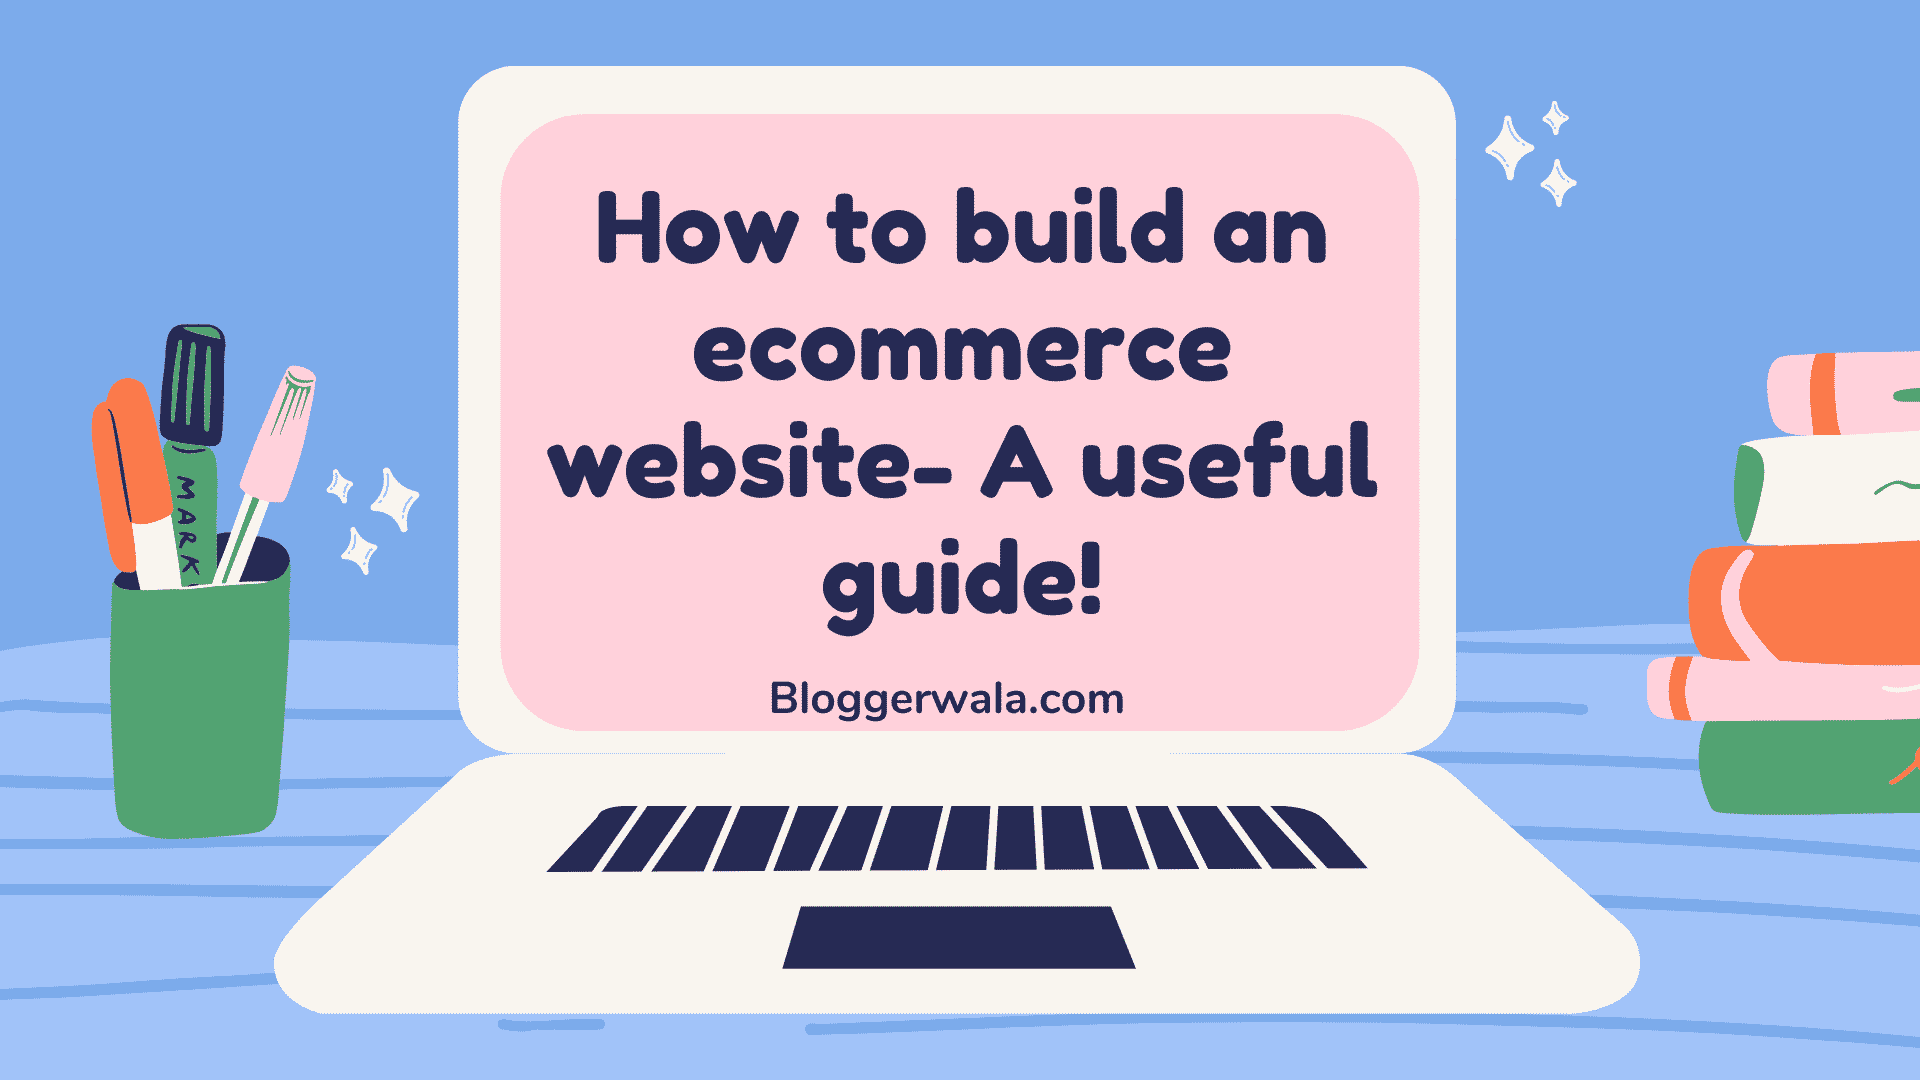 How to build an ecommerce website- A useful guide!